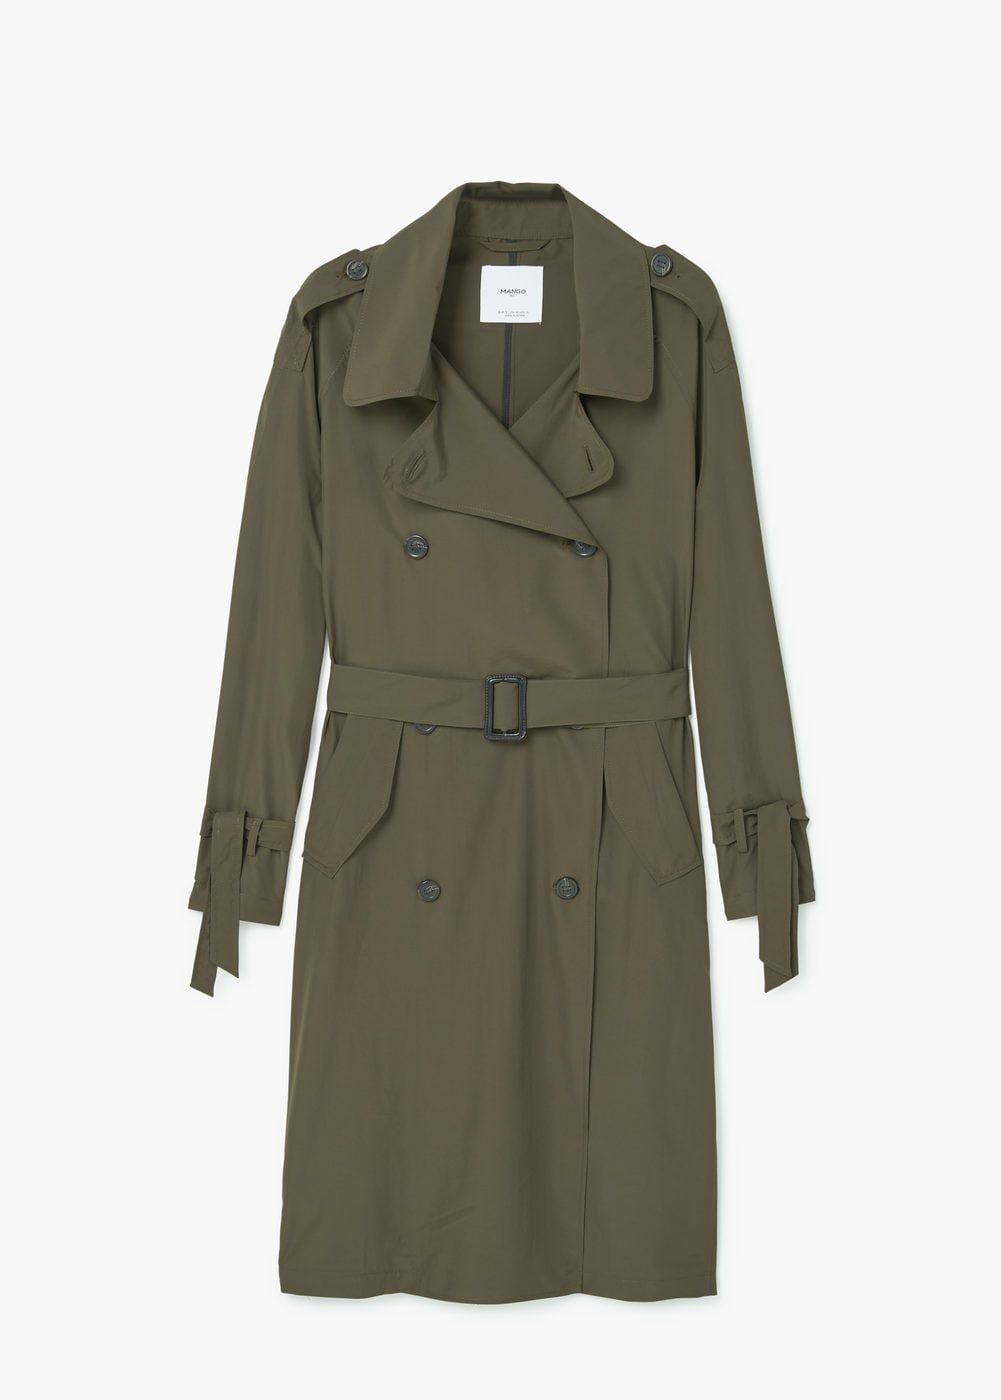 af829a63e8 Trench coton - Femme | Style | Coat, Military fashion, Fashion